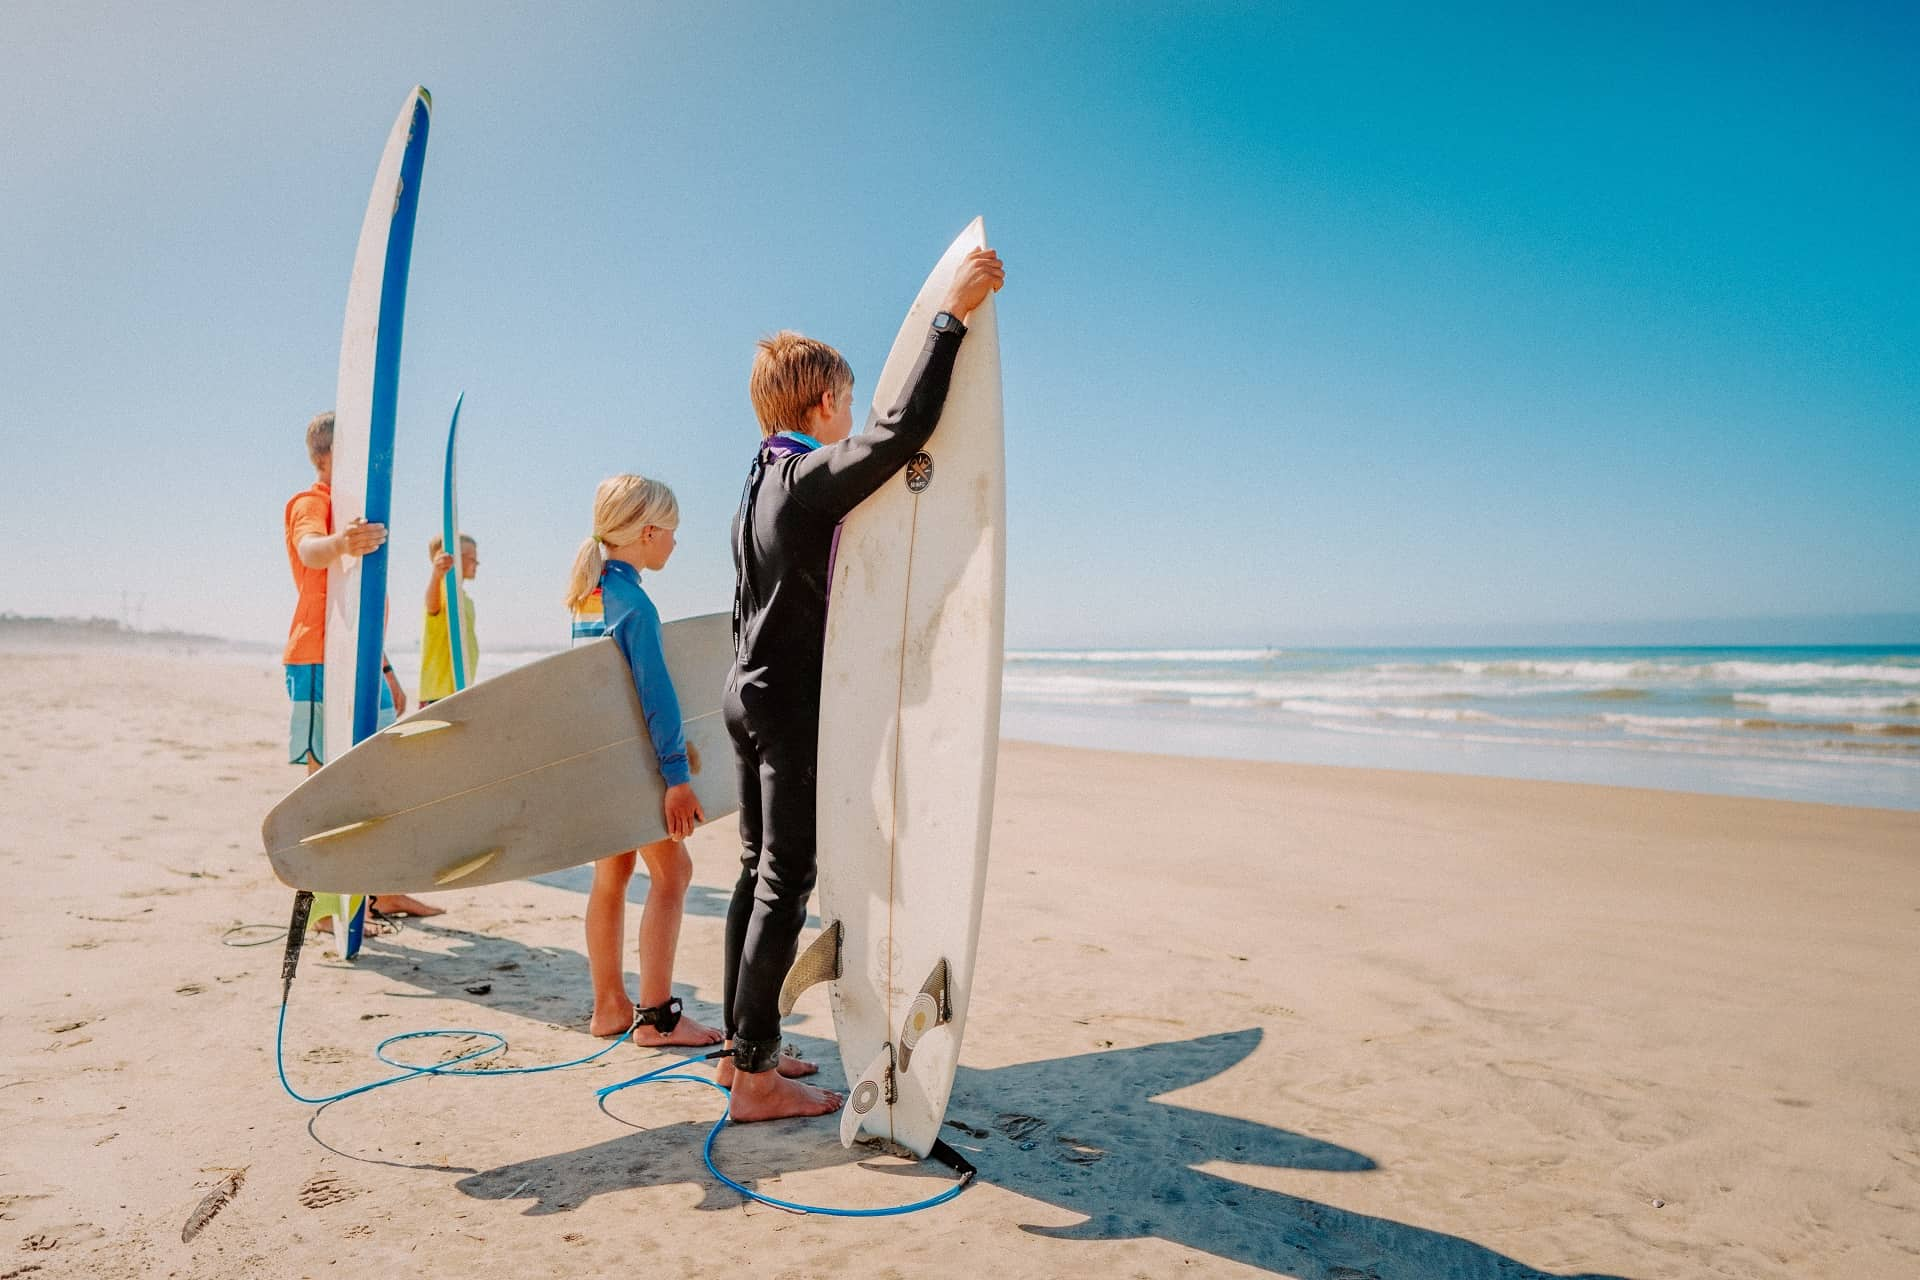 Kids with Surfboards at the Beach